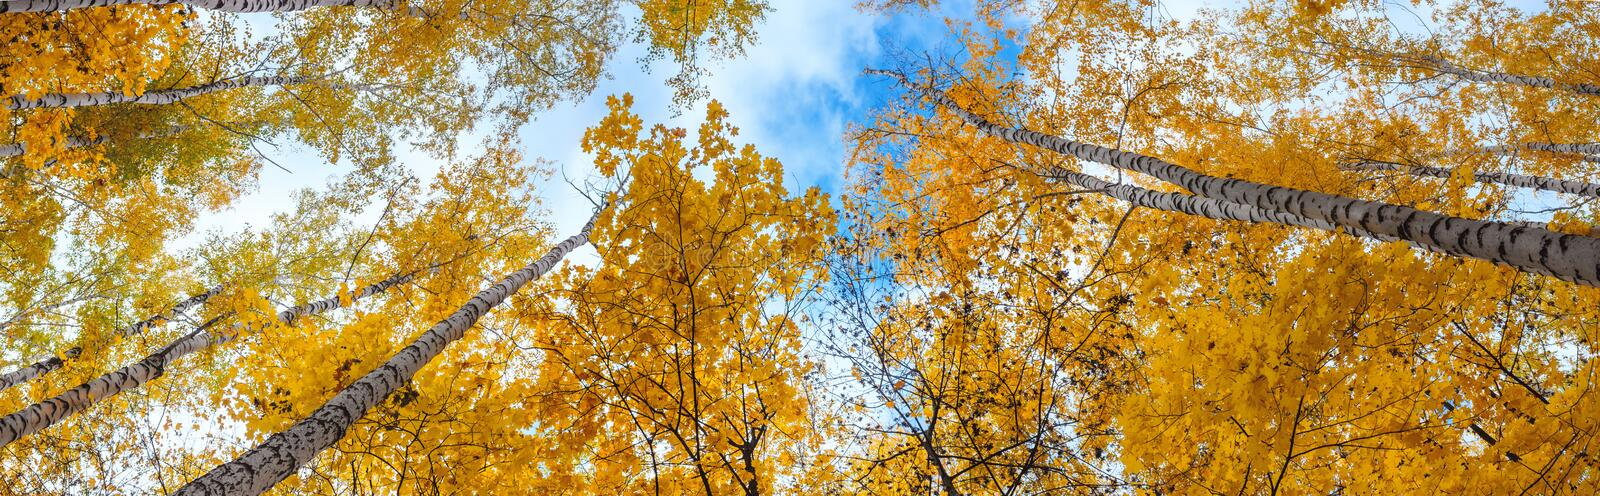 Birch grove view of the crown of the trees and sky on sunny autumn day. Panorama, banner stock photo